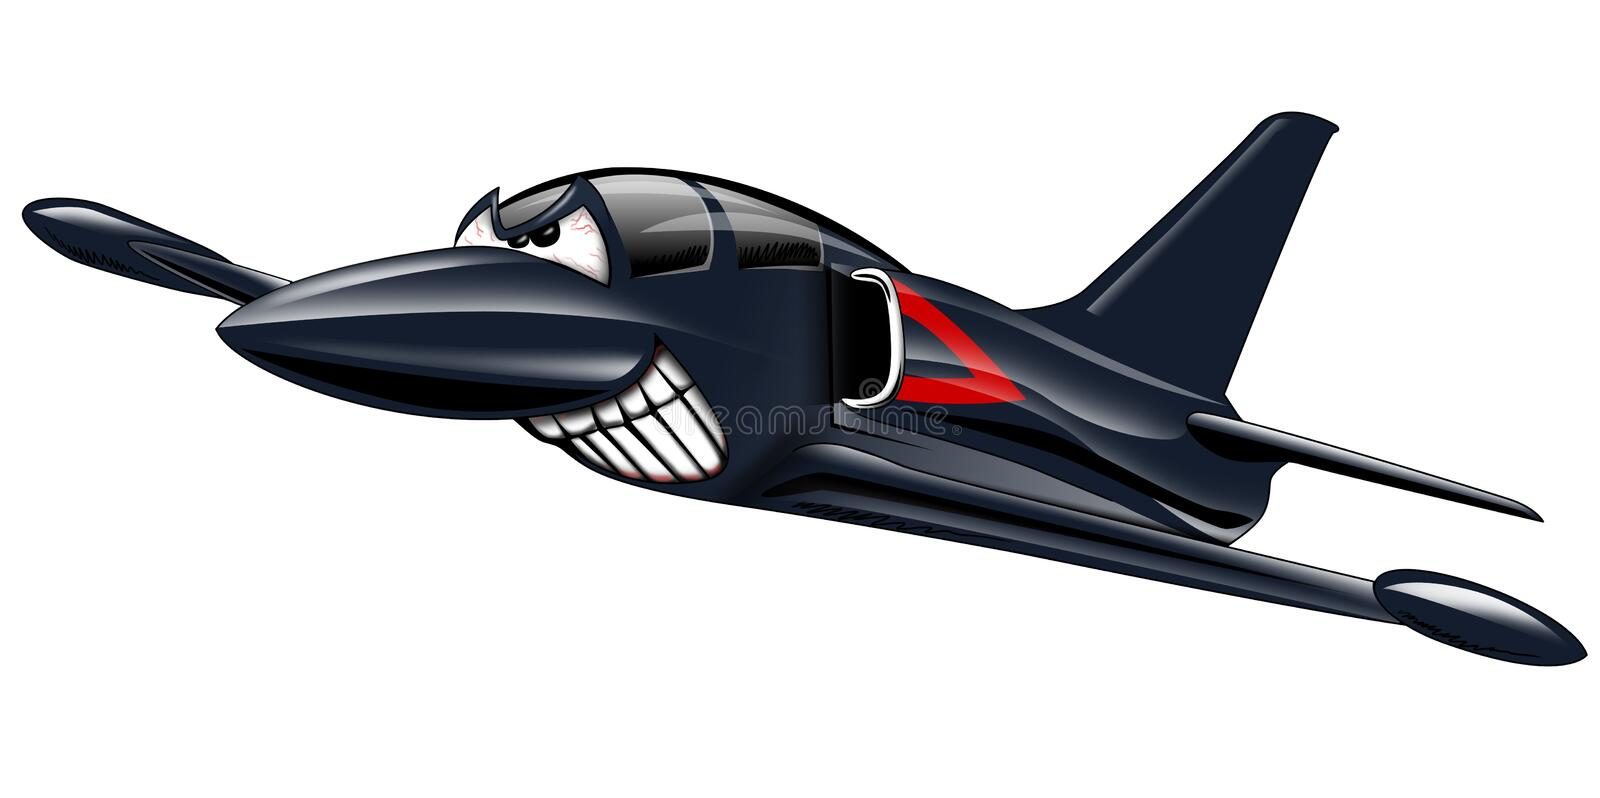 Military Jet Airplane Cartoon stock illustration